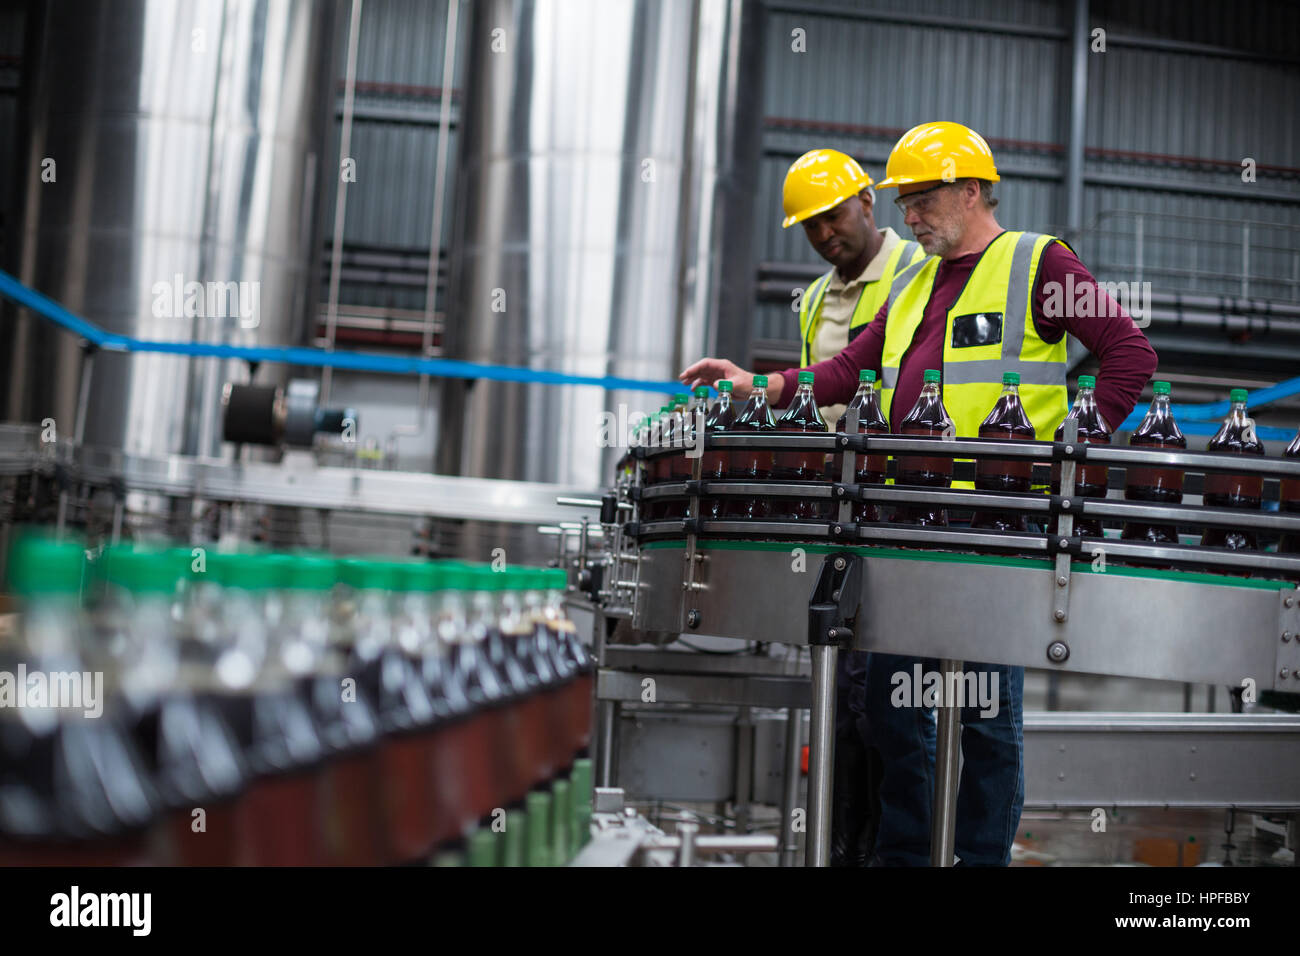 Two factory workers monitoring cold drink bottles at drinks production plant - Stock Image